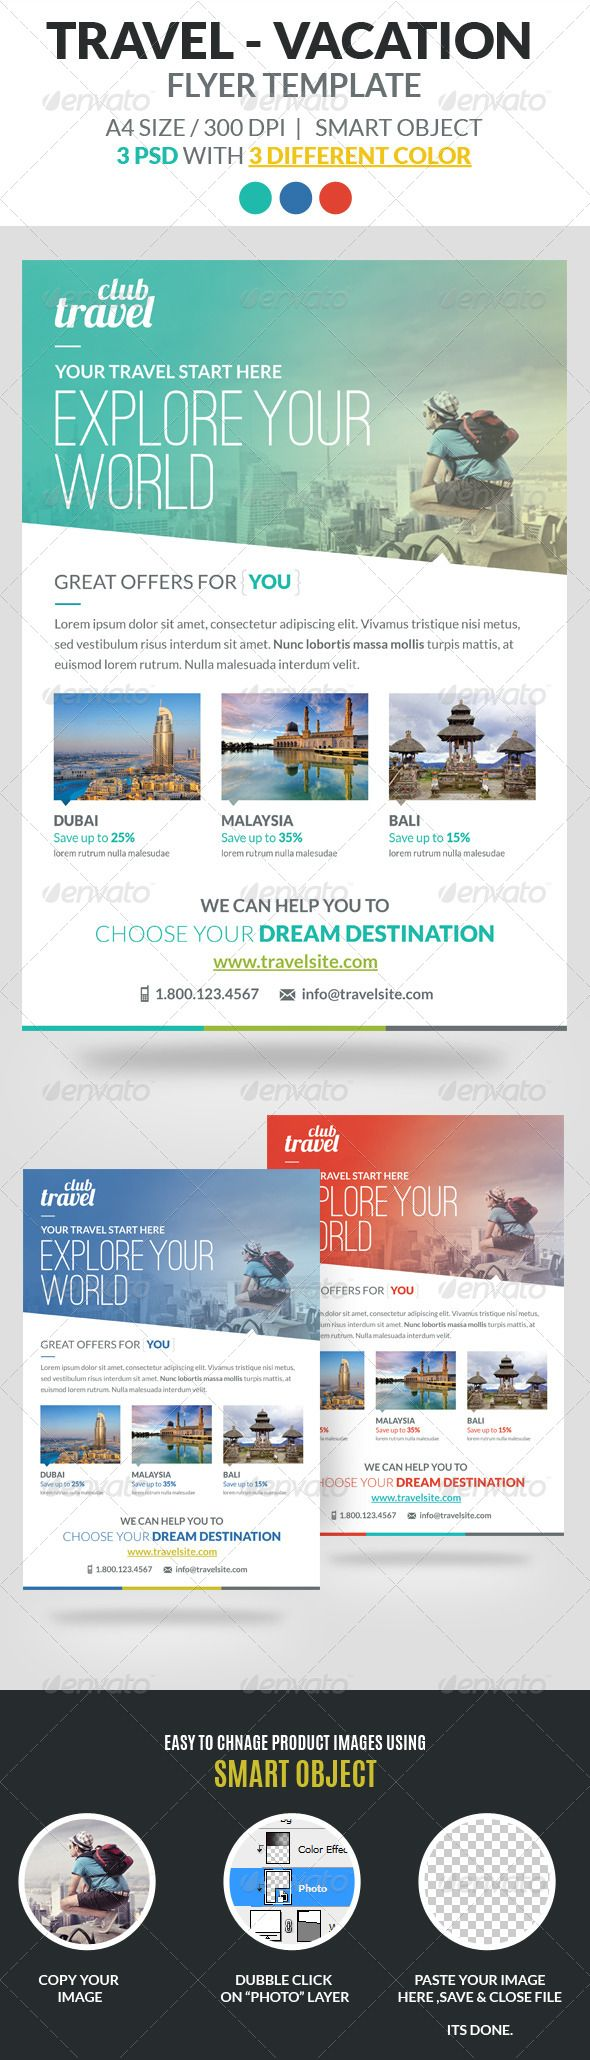 Travel - Vacation Flyer Template - Holidays Events